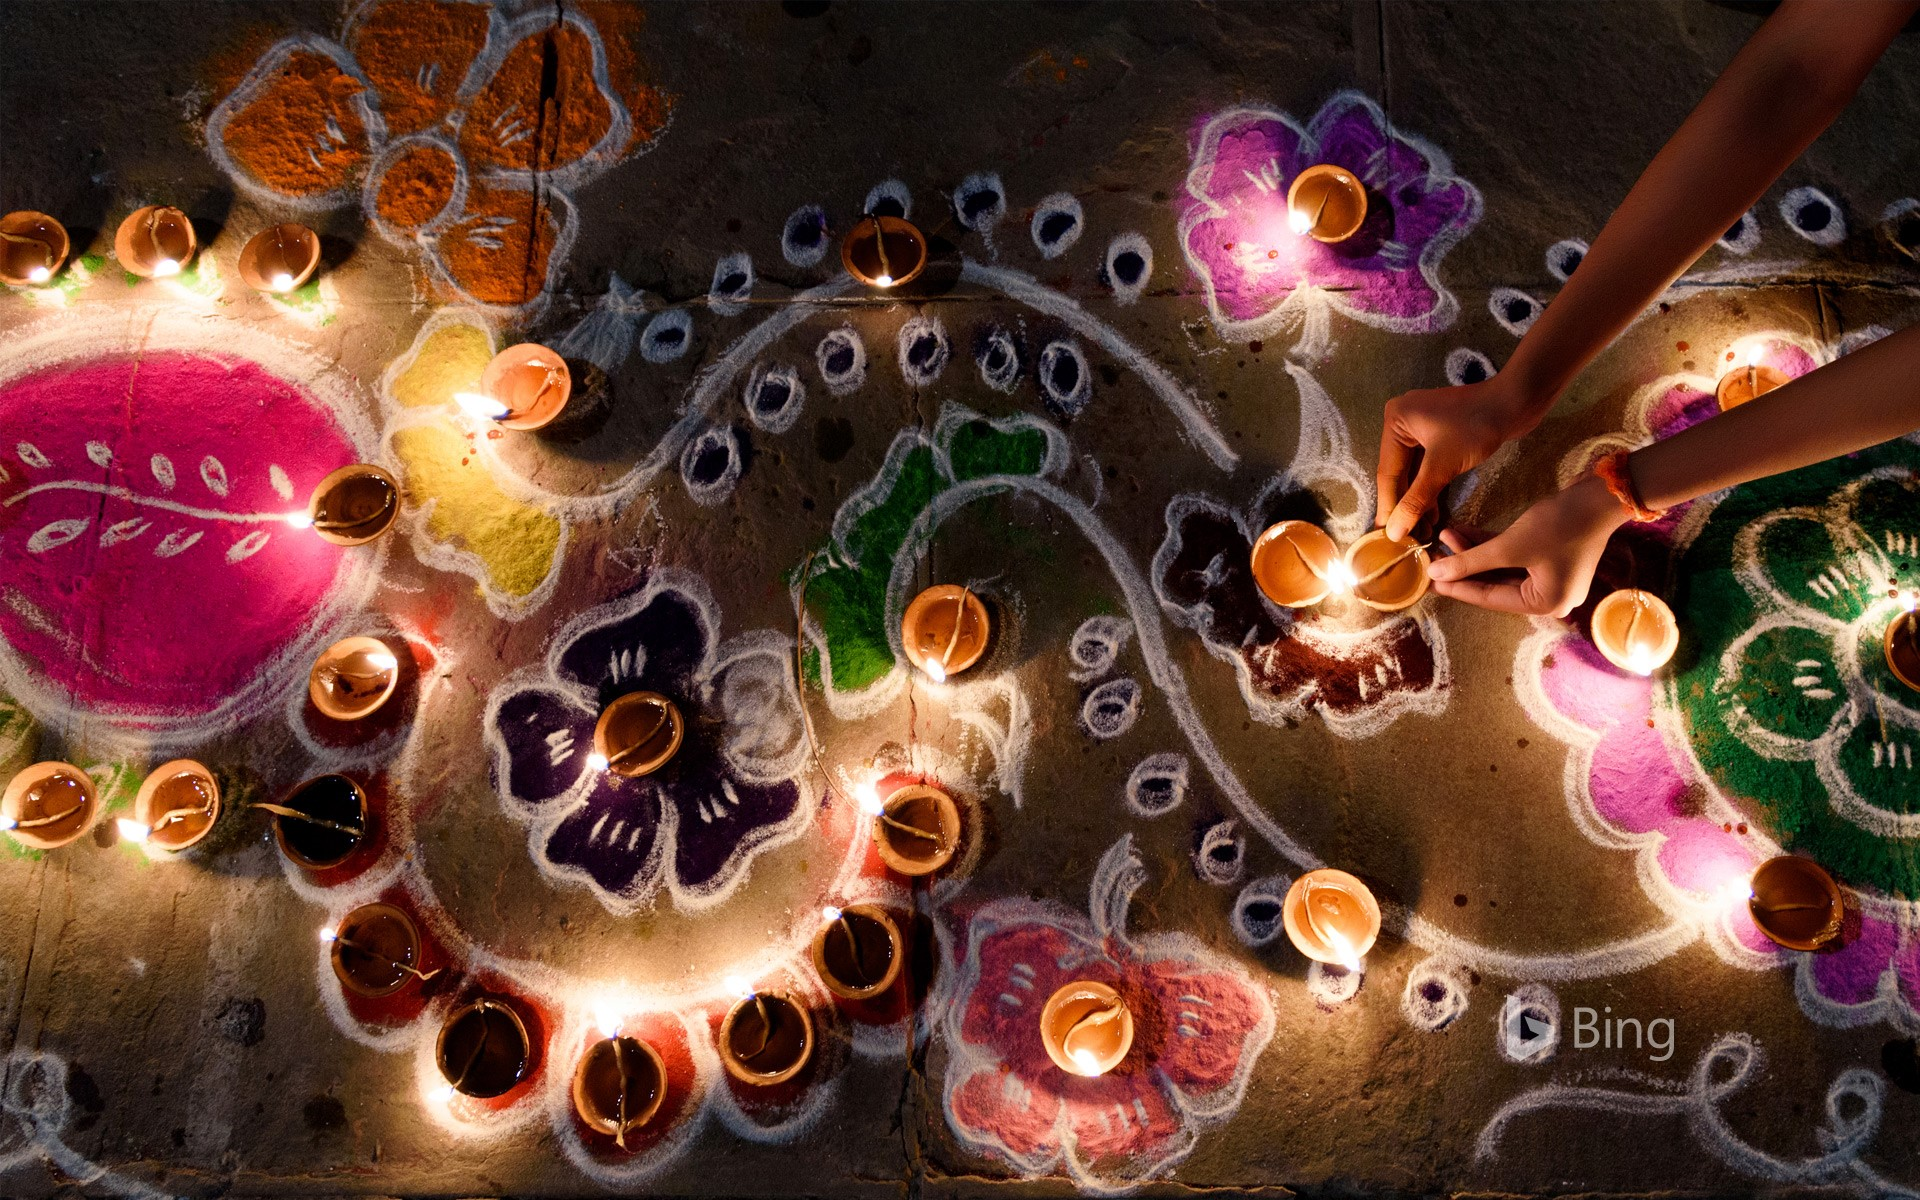 Oil lamps being arranged on rangoli during Diwali